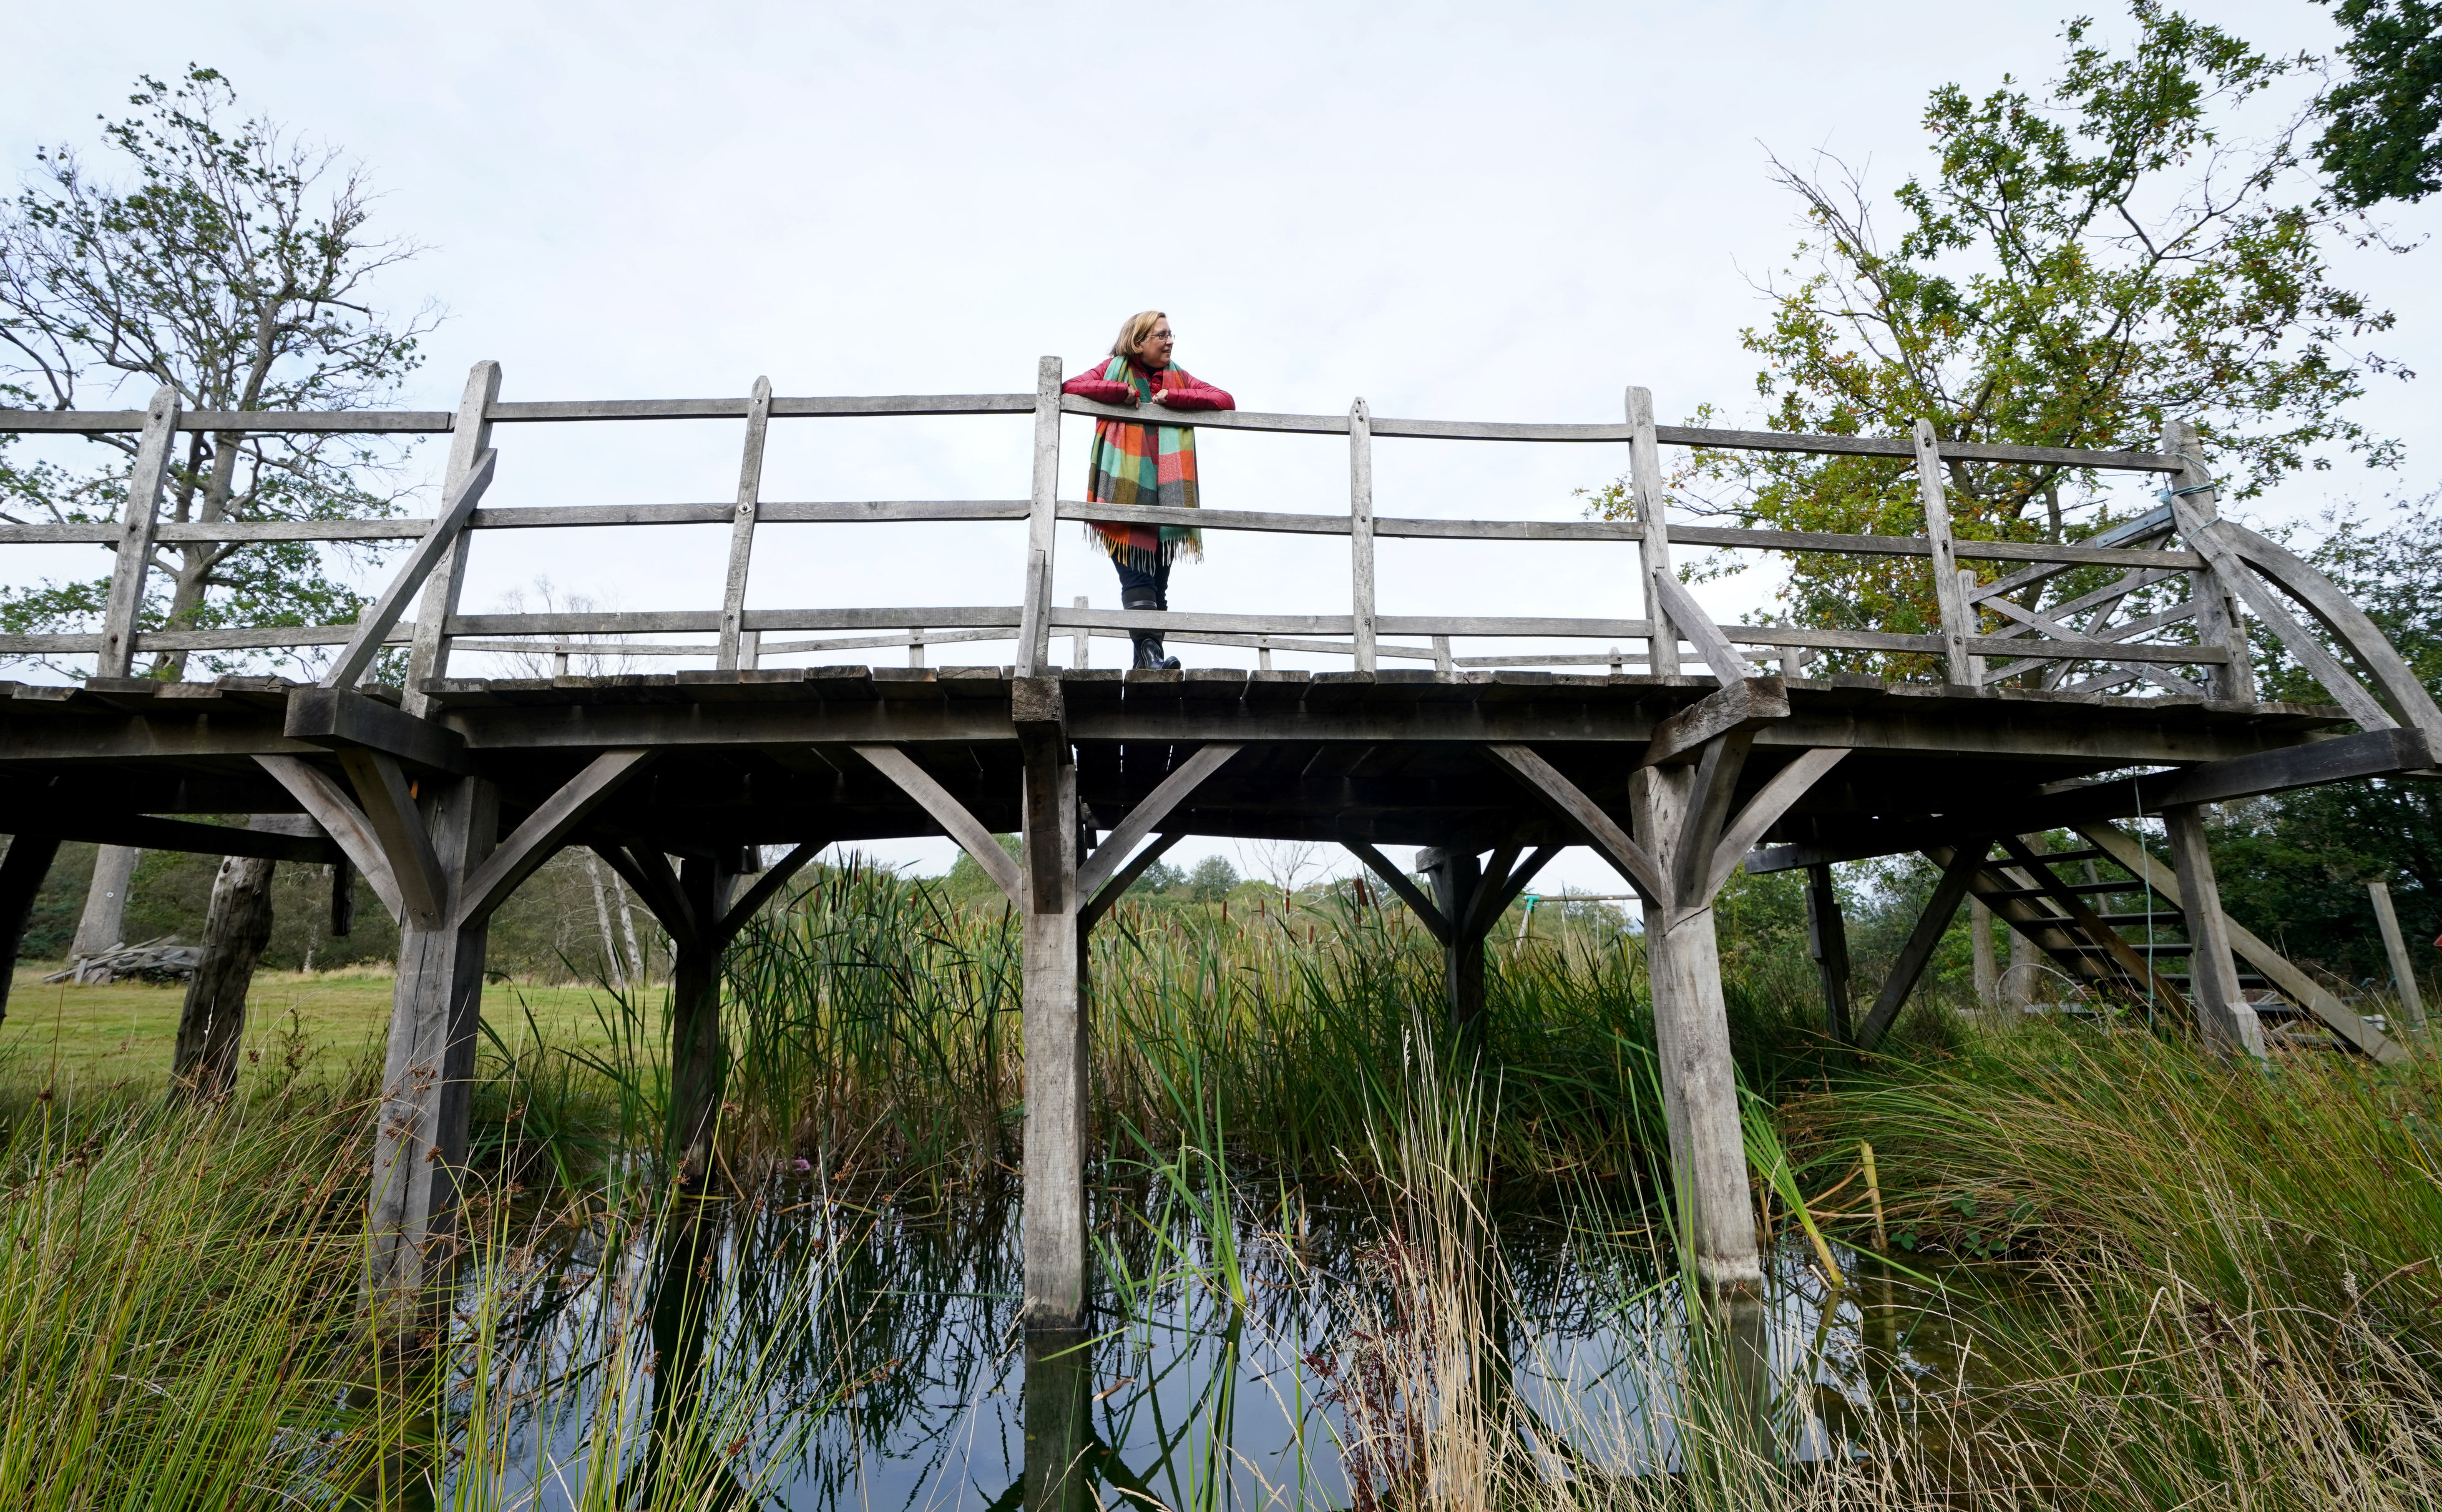 <p>Silke Lohmann of Summers Place Auctions stands on the original Poohsticks Bridge in Ashdown Forest in Kent. The bridge, which featured in A.A. Milne's Winnie the Pooh books and E.H. Shepard's illustrations, was replaced in 1999, but the original has been fully restored and goes up for sale at the auction house on October 5, for an estimate of �40,000 - �60,000. Picture date: Thursday September 30, 2021.</p>